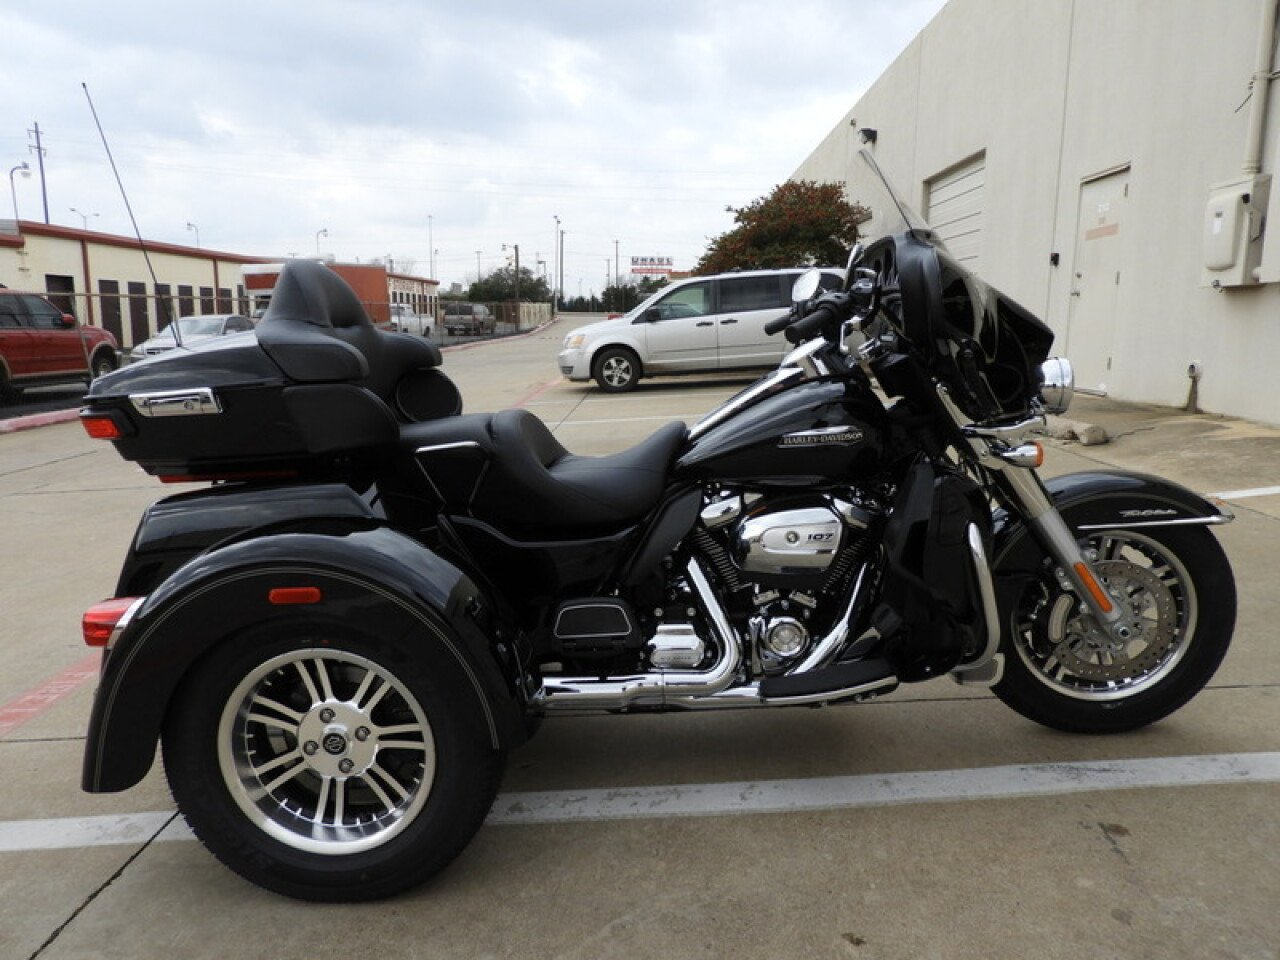 2018 Harley Davidson Motorcycles For Sale Texas >> 2018 Harley-Davidson Trike Tri Glide Ultra for sale near Garland, Texas 75041 - Motorcycles on ...